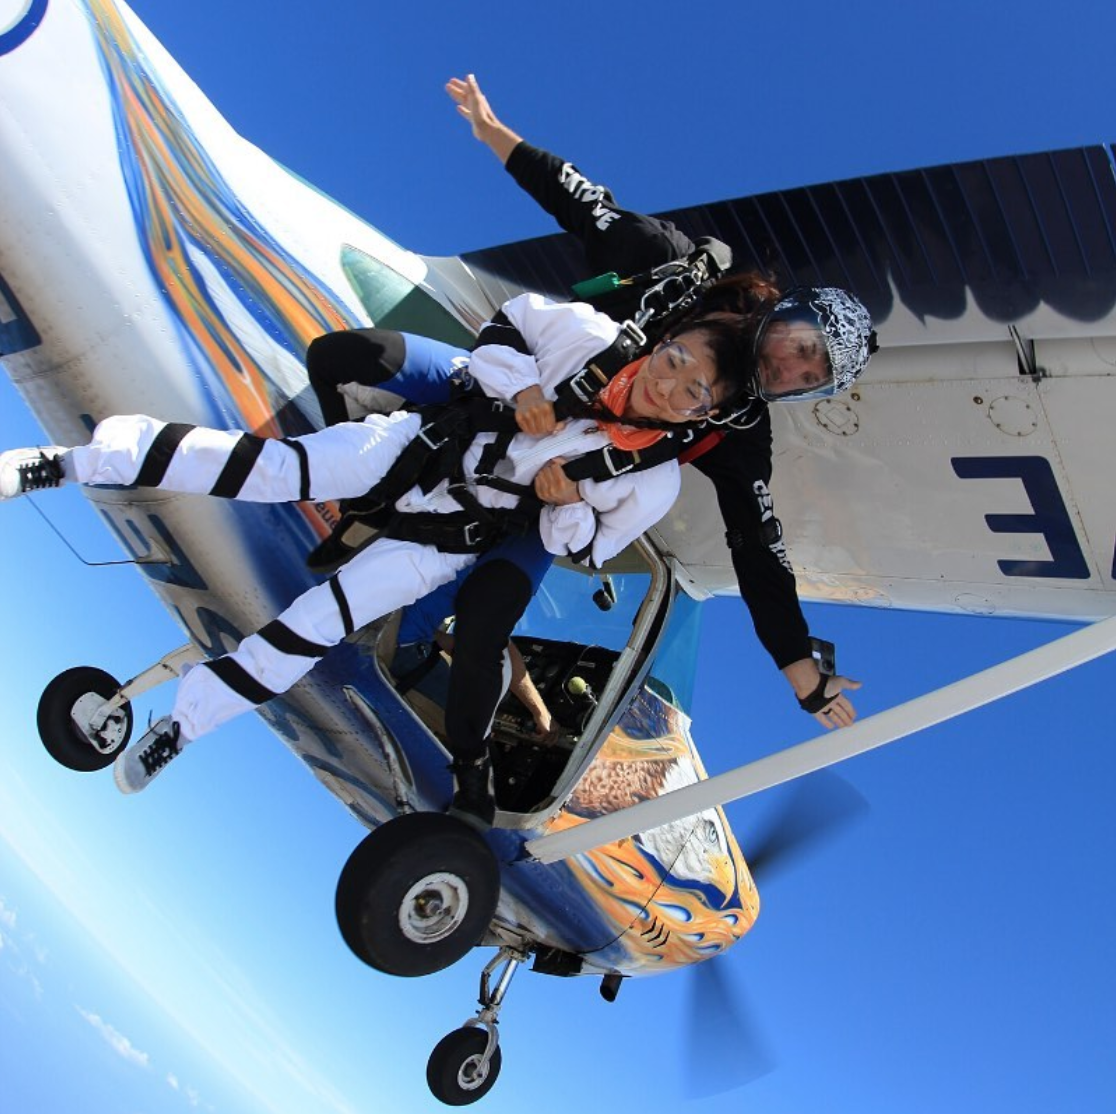 Tandem Skydiving in South Africa at Skydive Mossel Bay near Cape Town